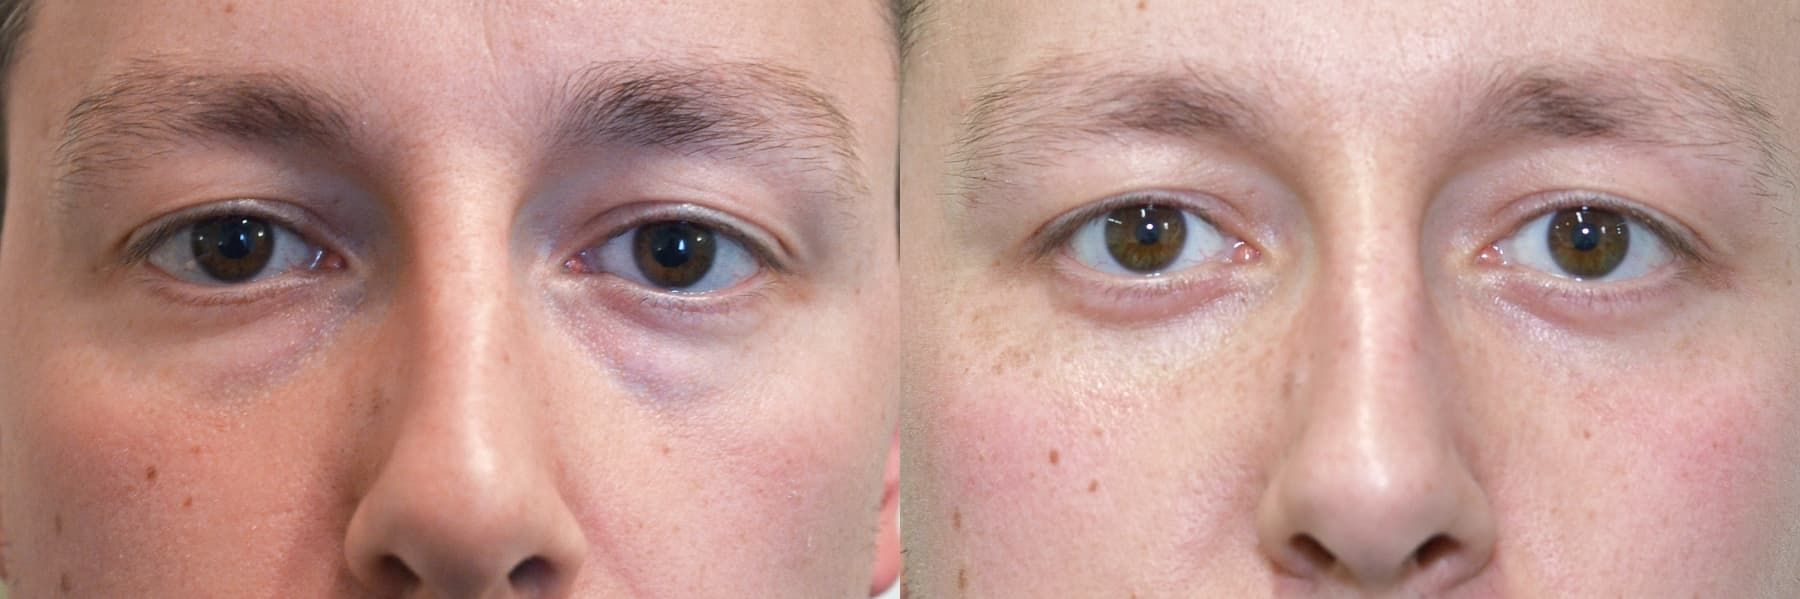 Eye Plastic Surgery Before After Pictures 1